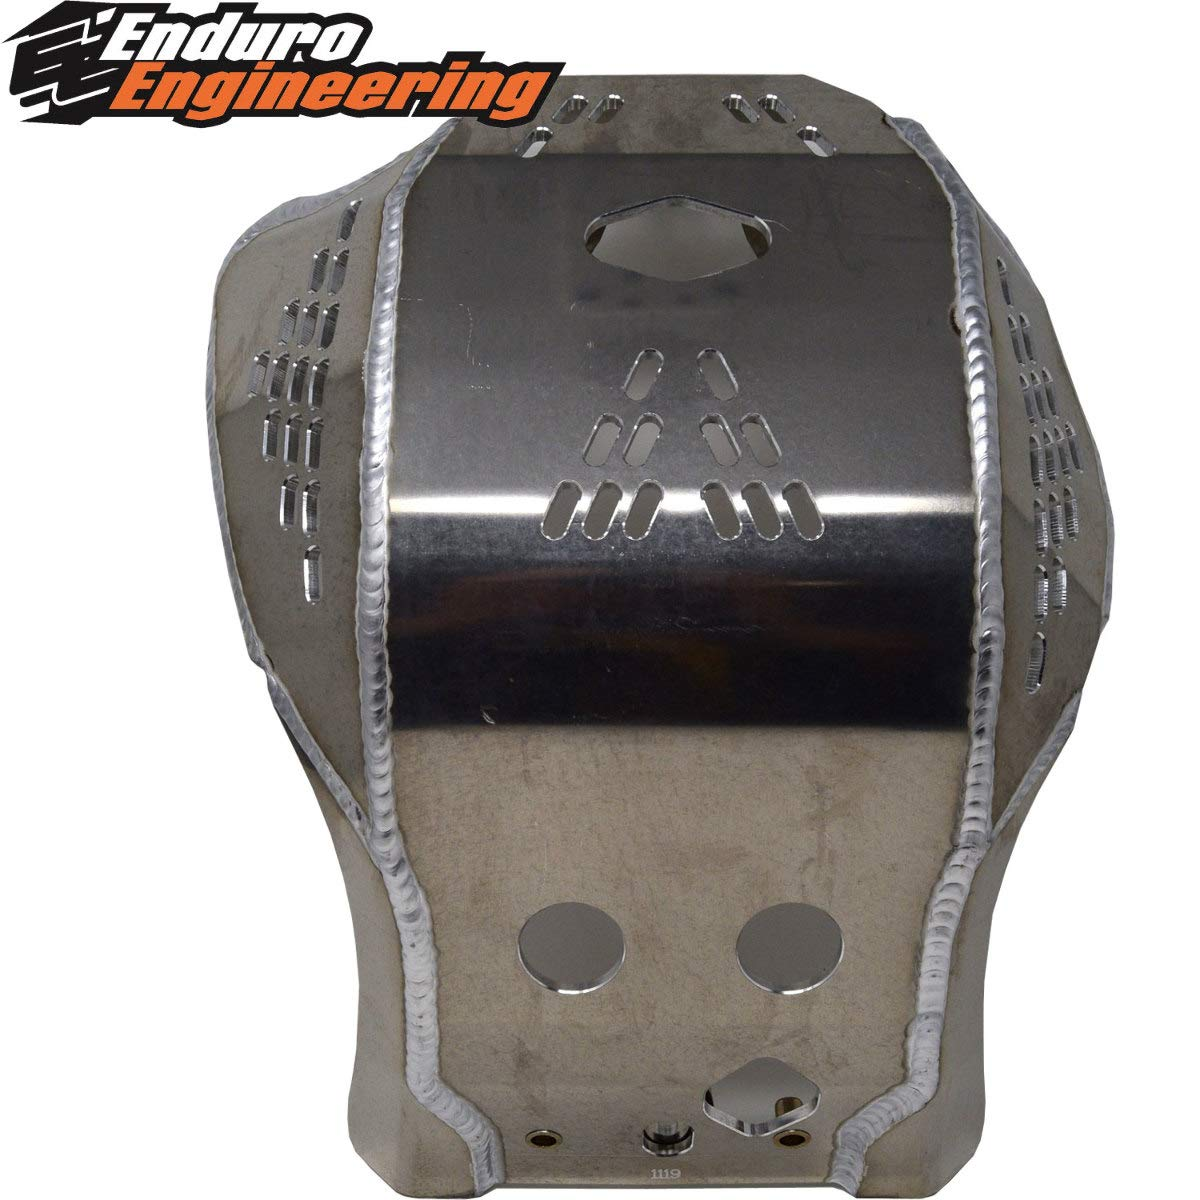 Enduro Engineering Extreme Skid Plate Compatible with 2019 KTM//Husqvarna 250//350 24-1119X